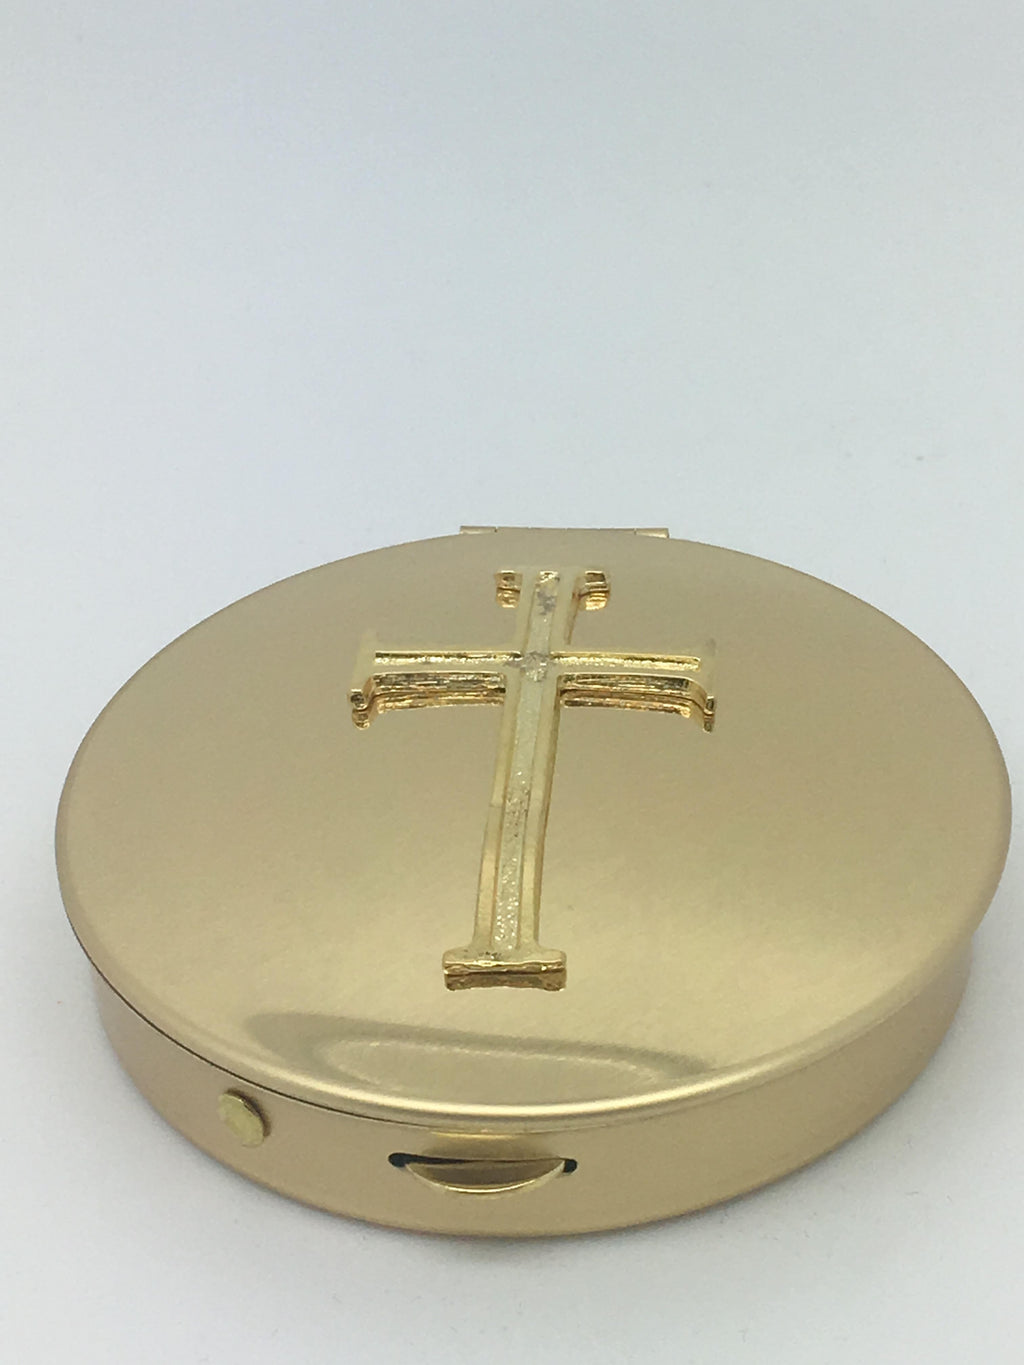 Gold-plated Pyx with Latin Cross Emblem - Unique Catholic Gifts